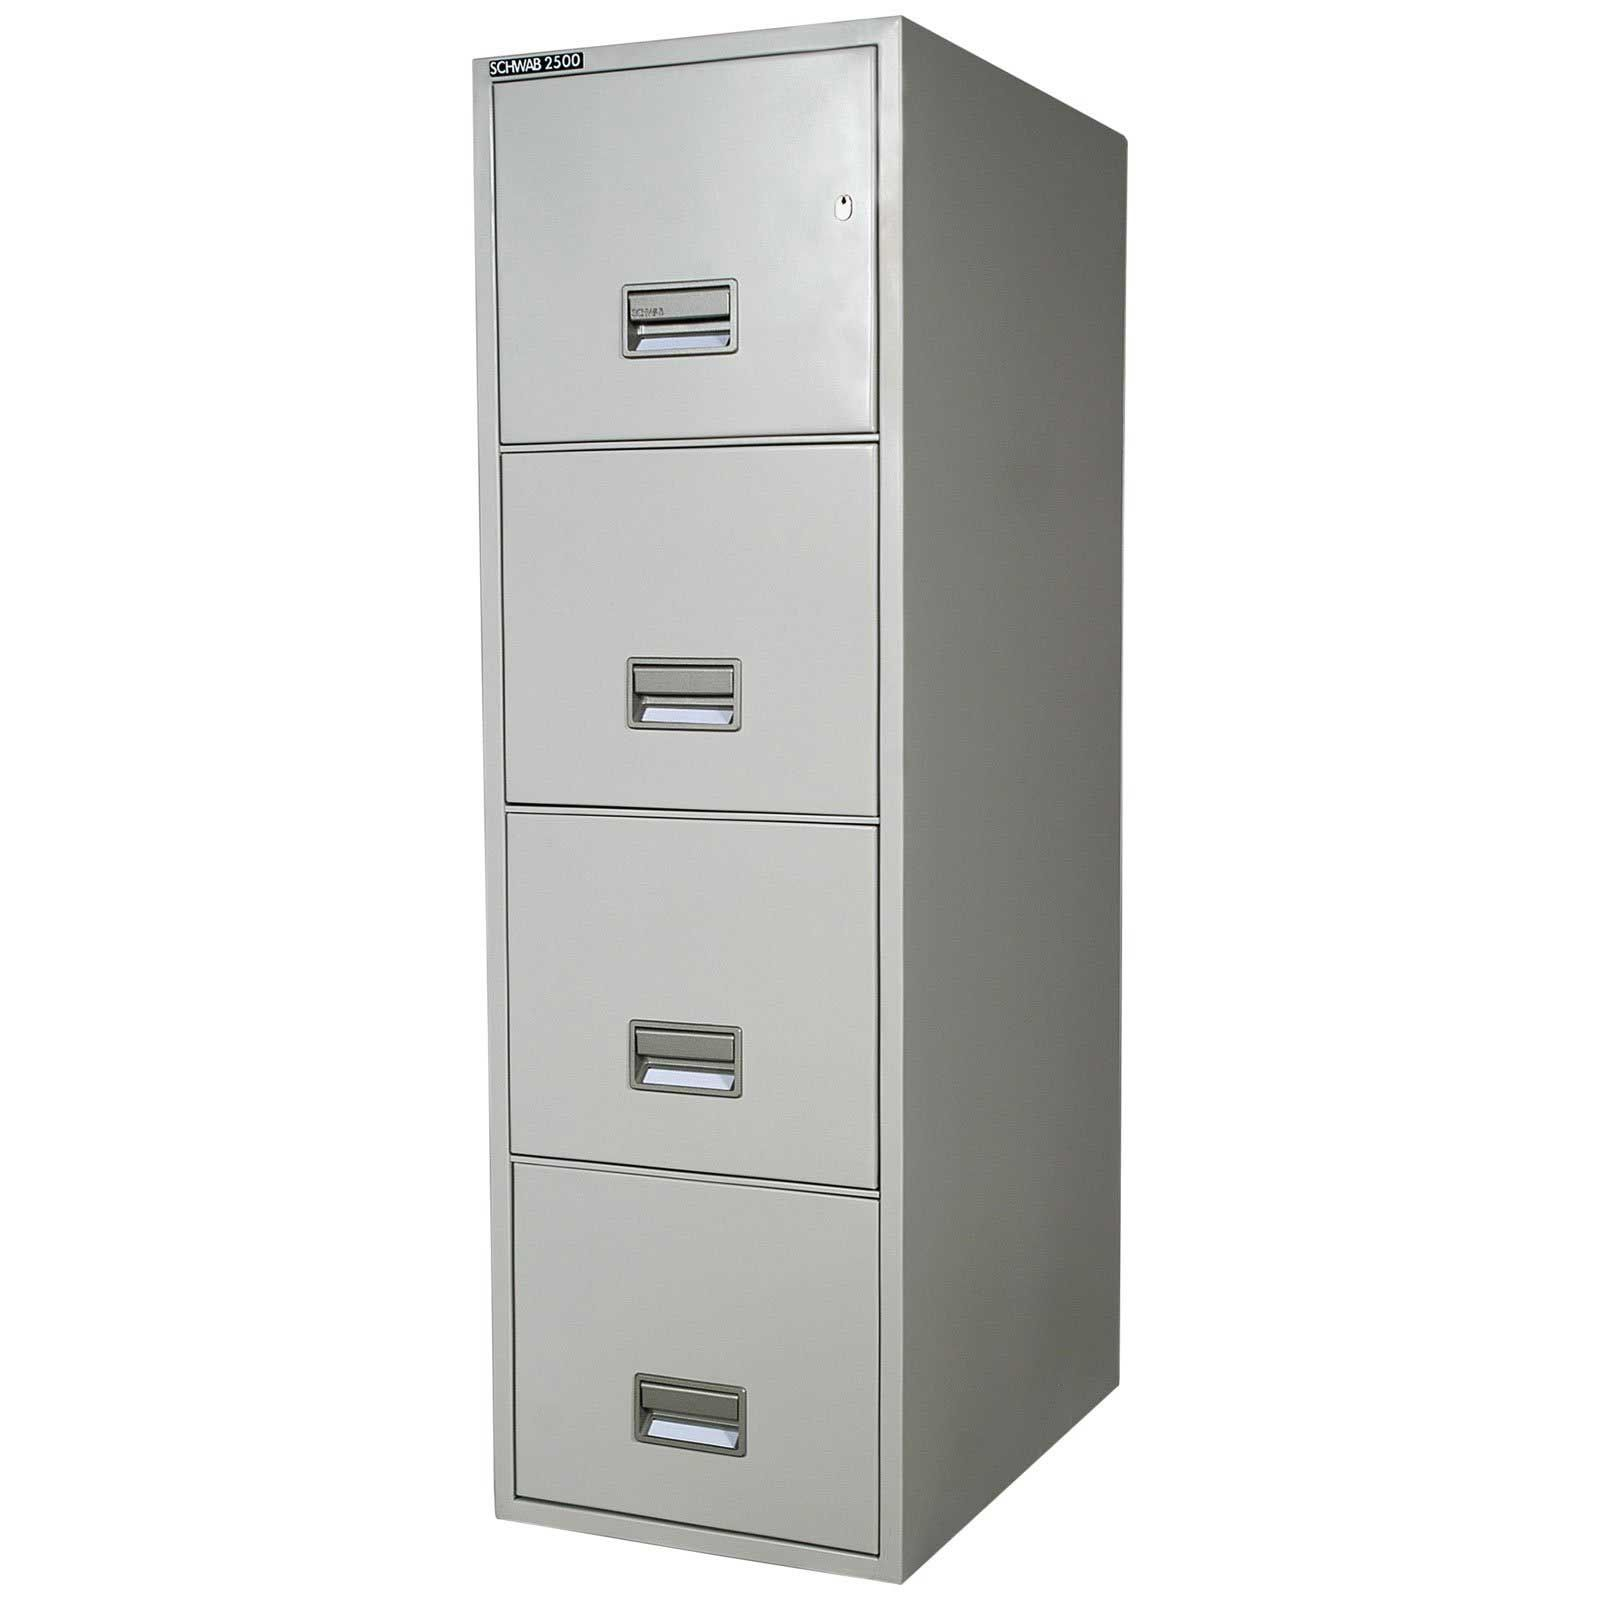 cabinets storage cabinet metal drawer lockable larger l homcom wwheels multi filing view drawers